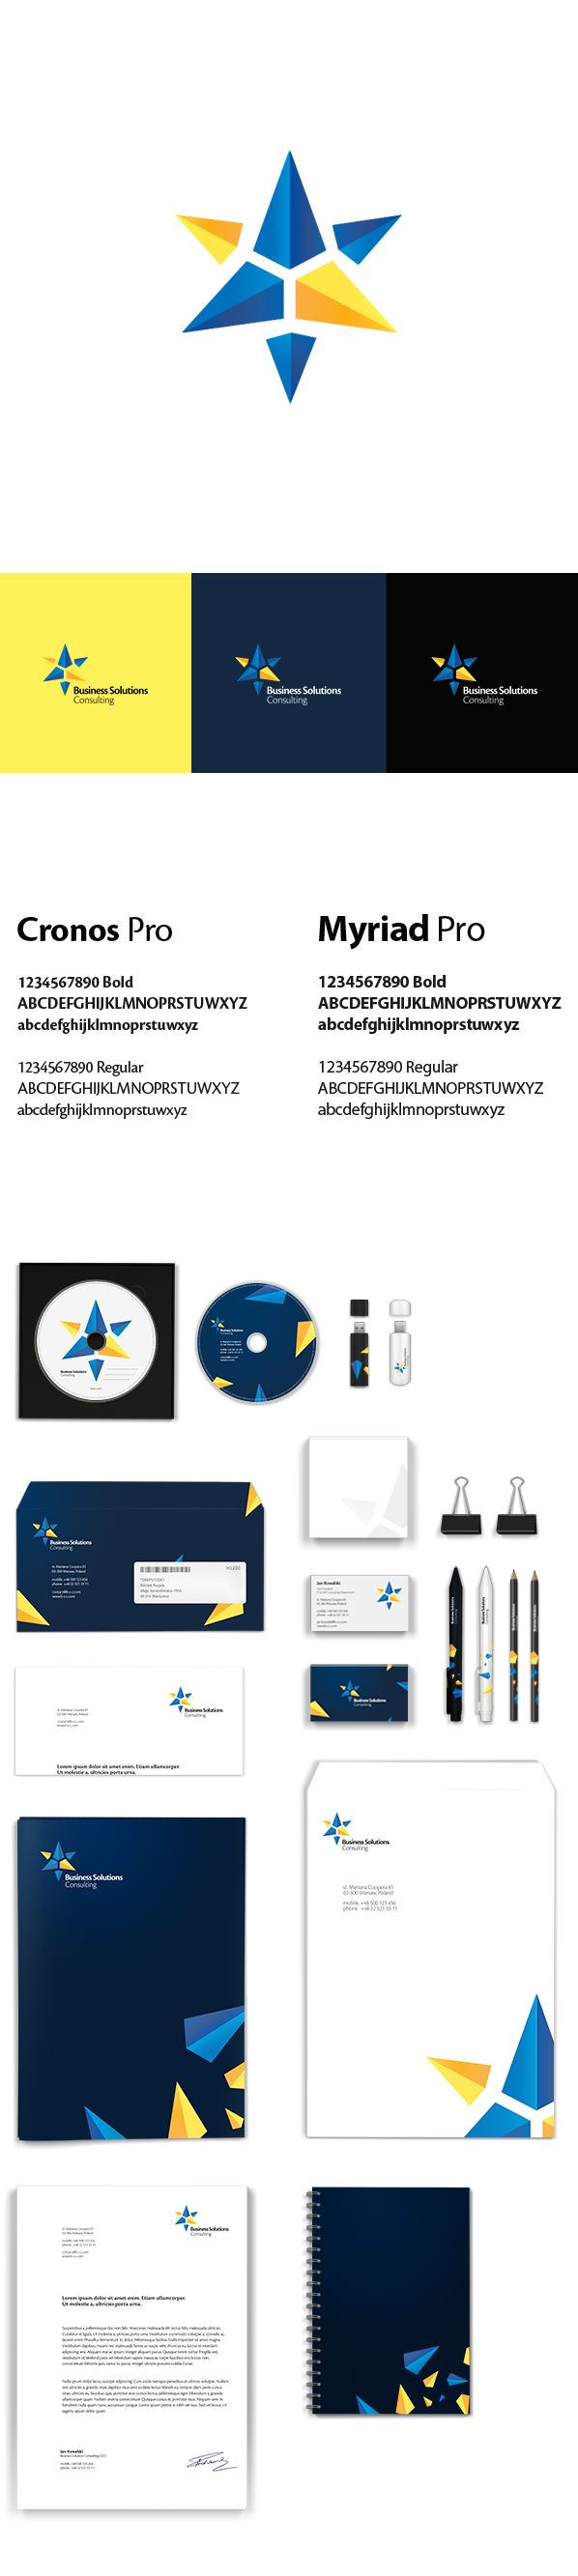 Business Solutions on Behance | #stationary #corporate #design #corporatedesign #identity #branding #marketing < repinned by www.BlickeDeeler.de | Take a look at www.LogoGestaltung-Hamburg.de